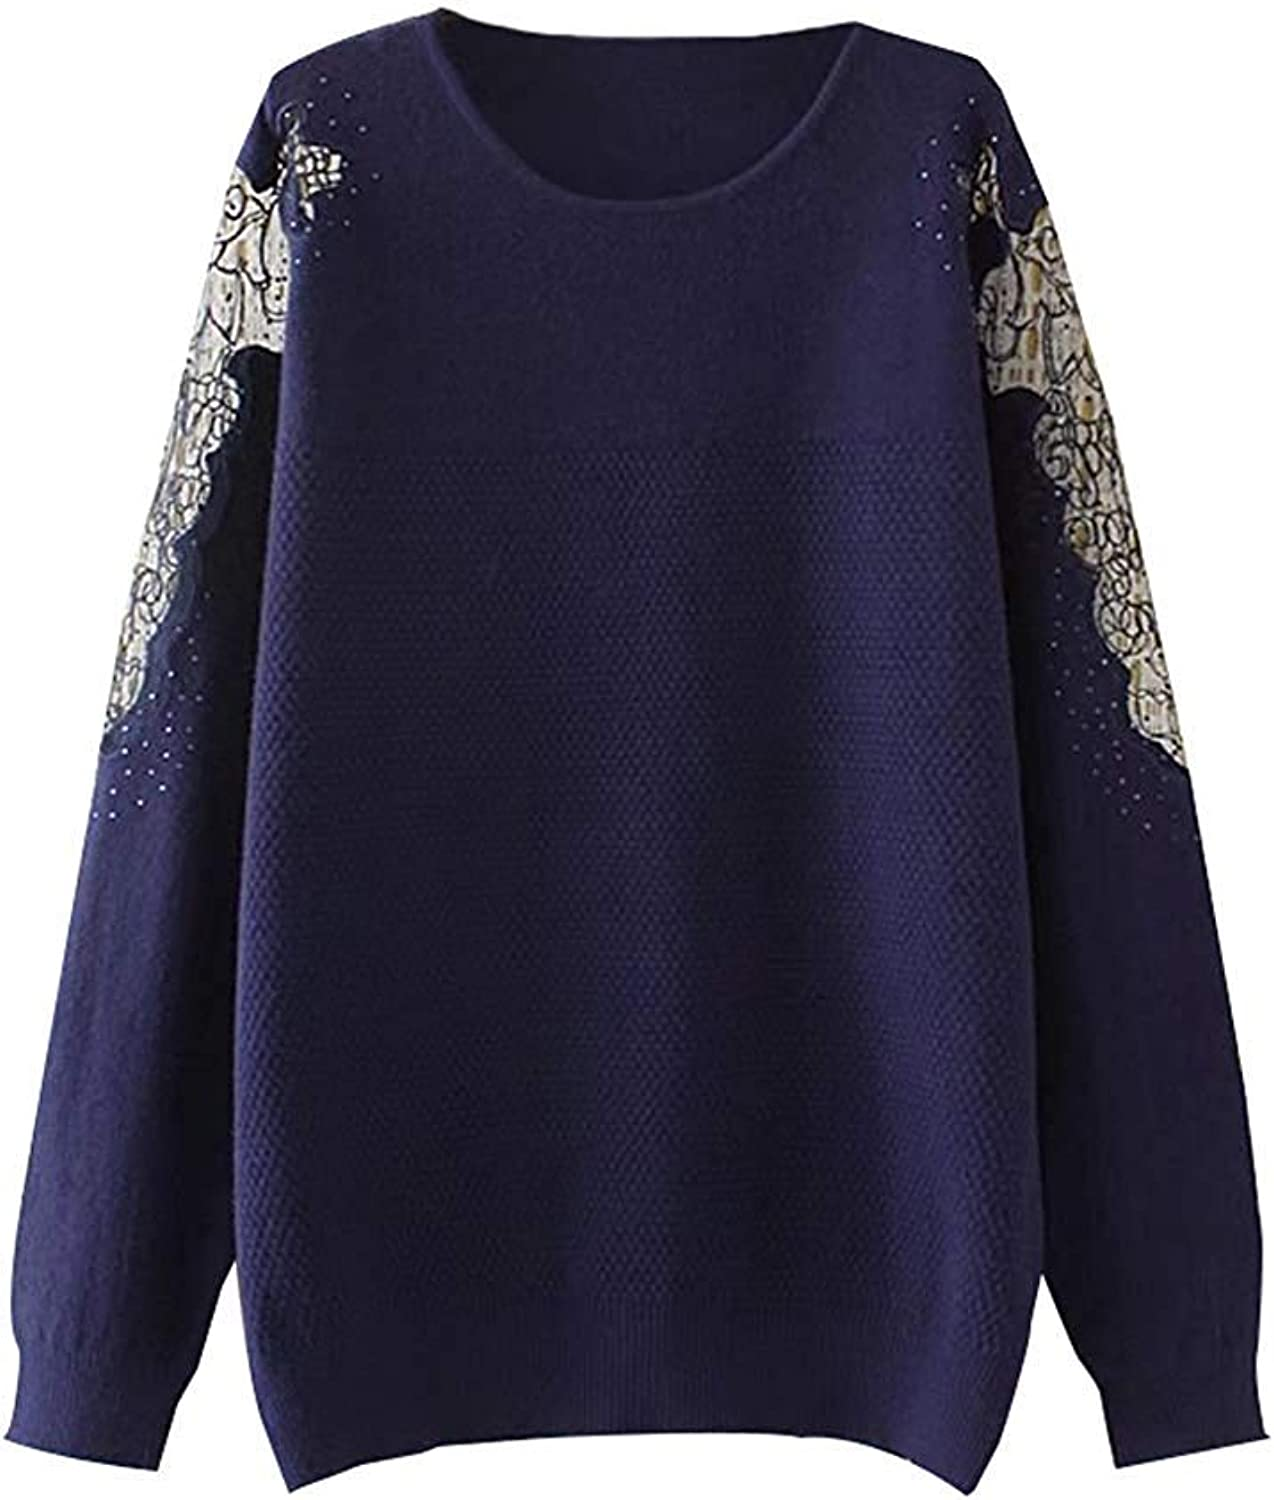 Oudan Women's Cotton Knitted Long Sleeve Jumper Sweatshirt Casual Knitwear Tops (color   Navy, Size   Large)